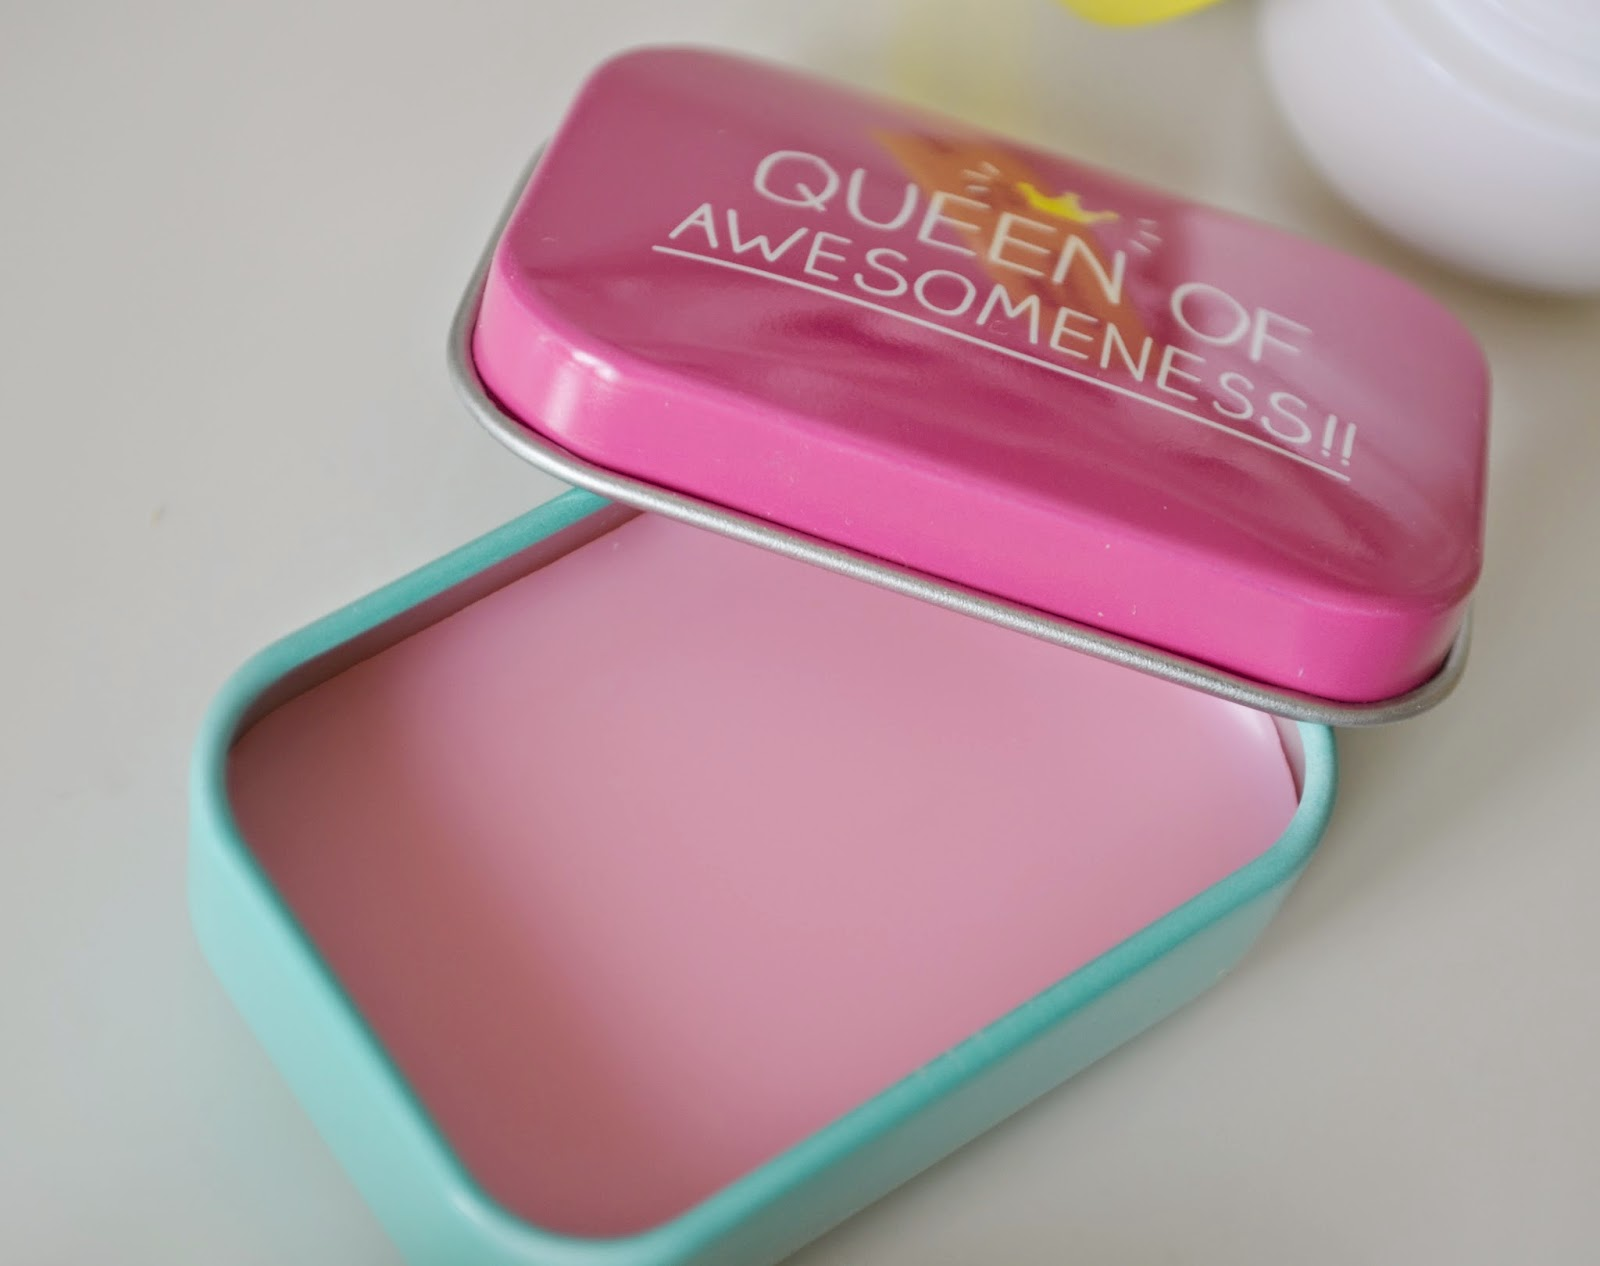 queen of awesomeness lip balm